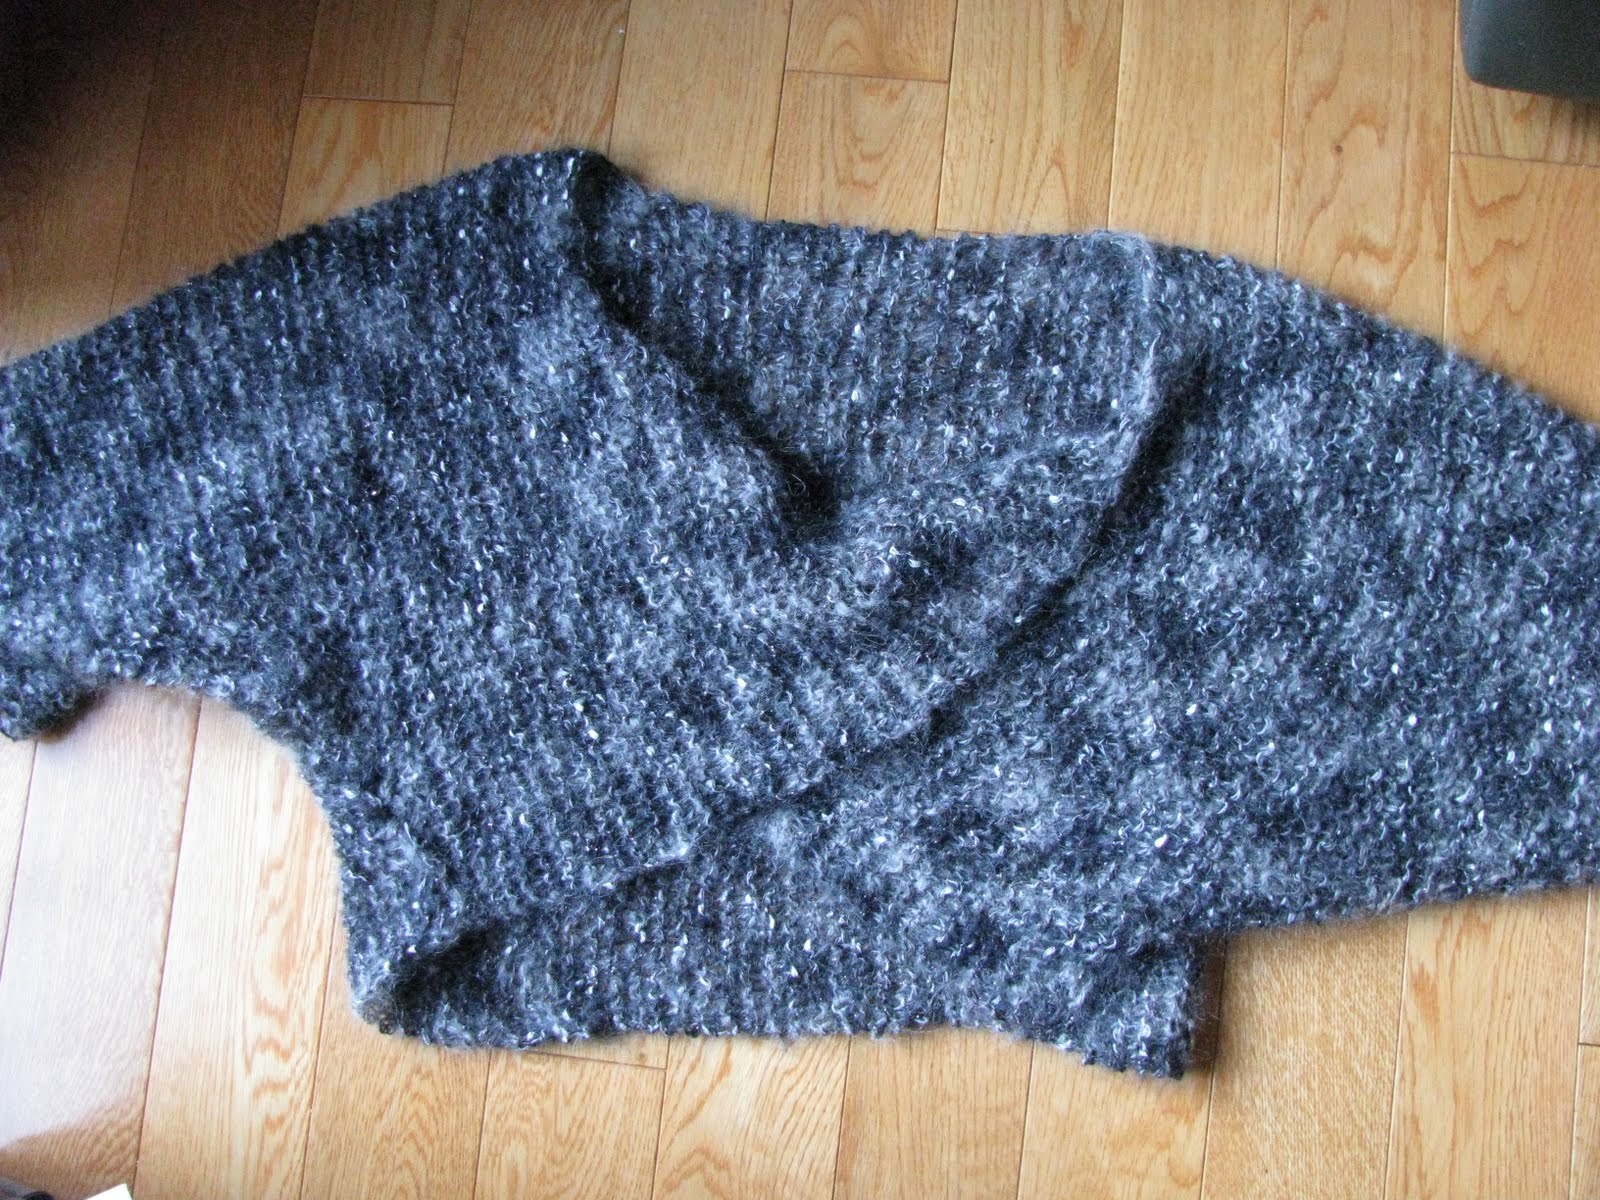 Chris Knits in Niagara: Shrug with a Twist